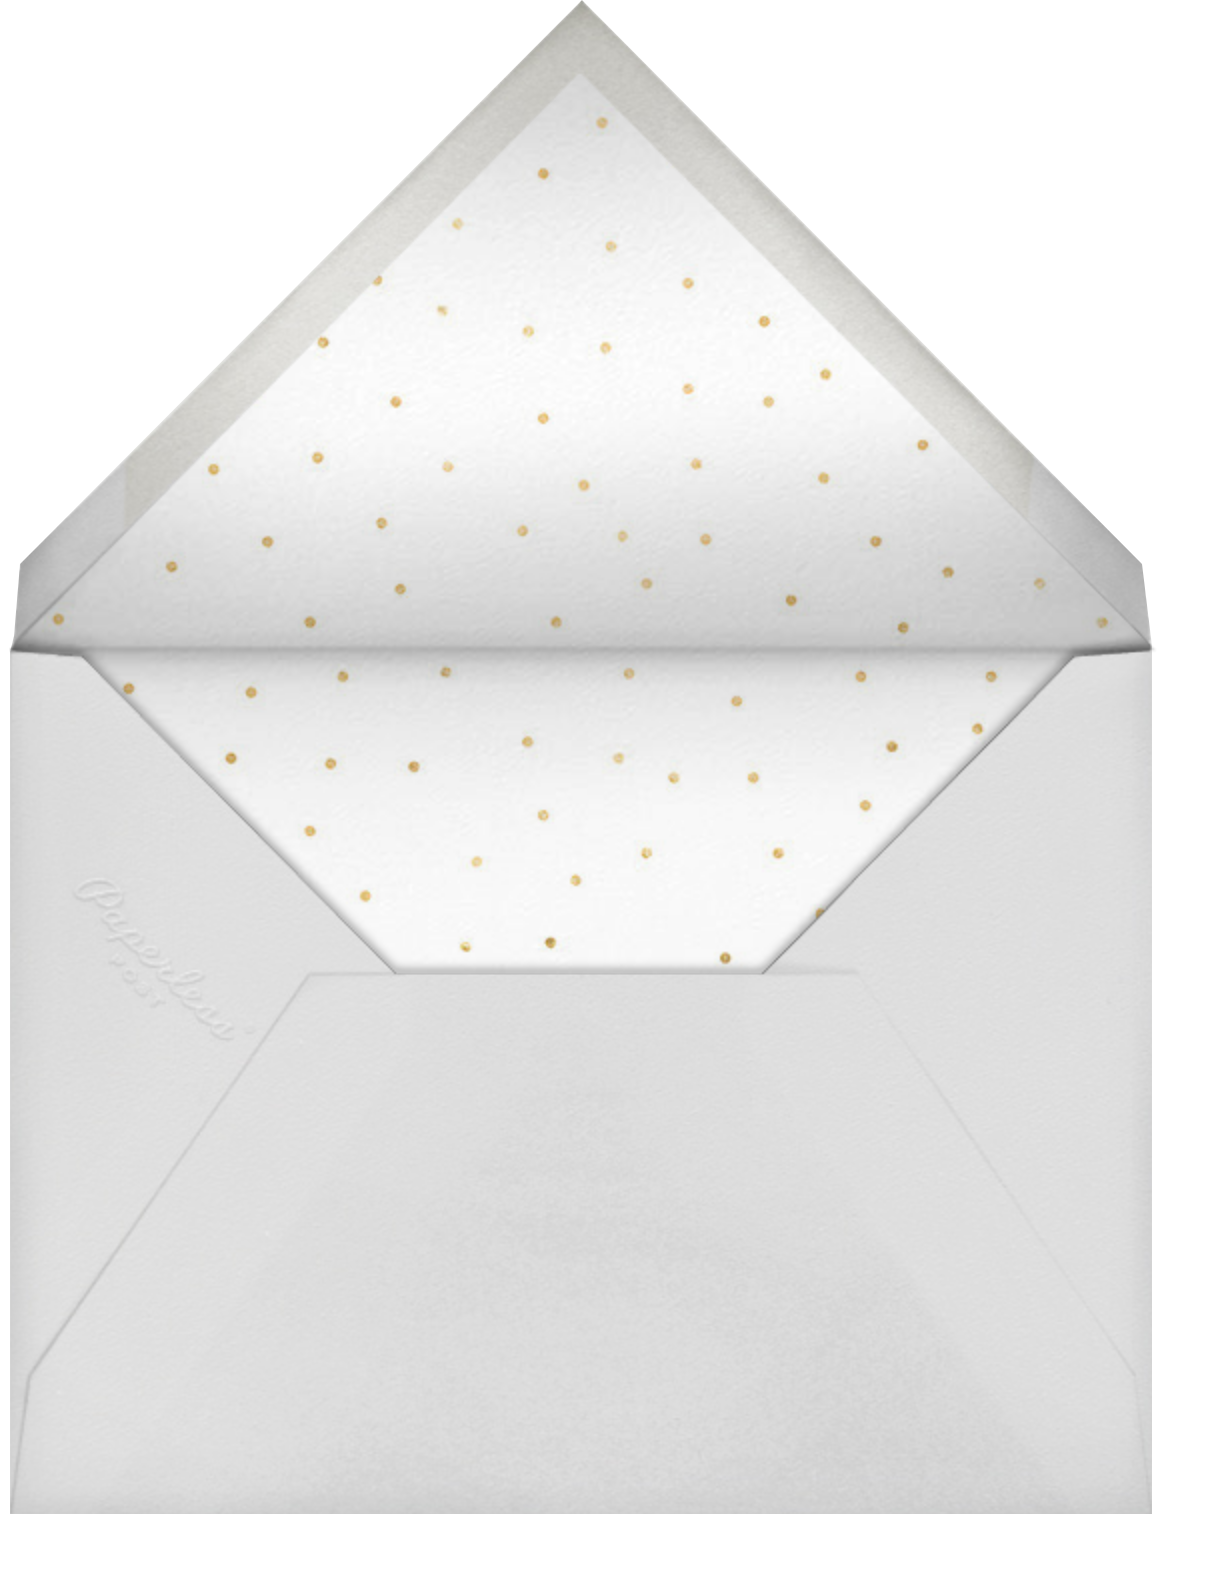 Maple Wreath - Greenwood - Paperless Post - Cocktail party - envelope back